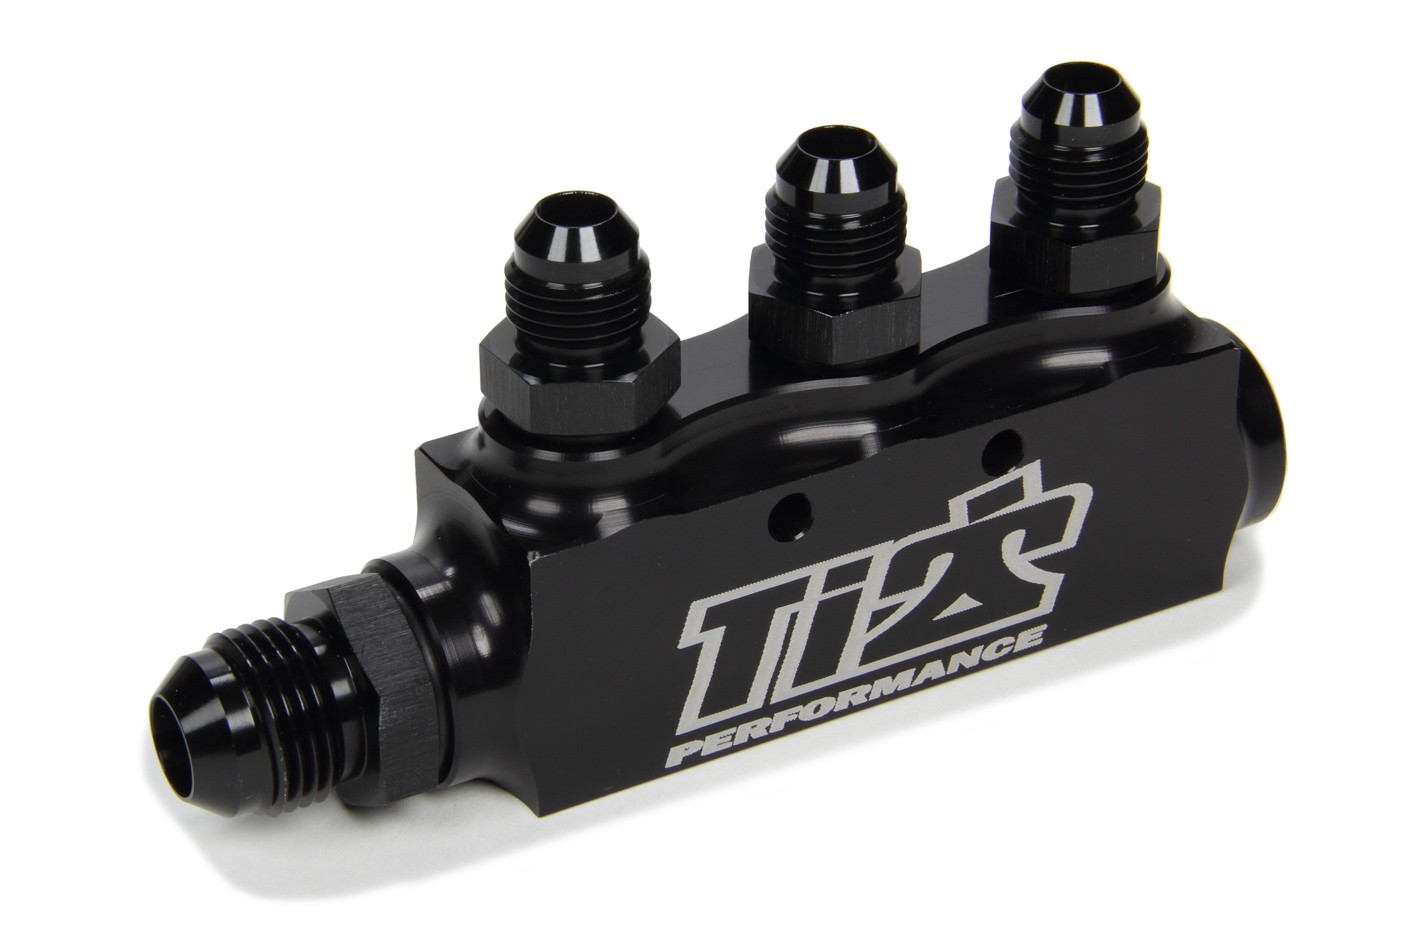 Ti22 Performance 5500 Fuel Block, Three 6 AN Female Ports, One 8 AN Female Port, Male Adapter Fittings Included, One 8 AN Male Fitting, Aluminum, Black Anodize, Each